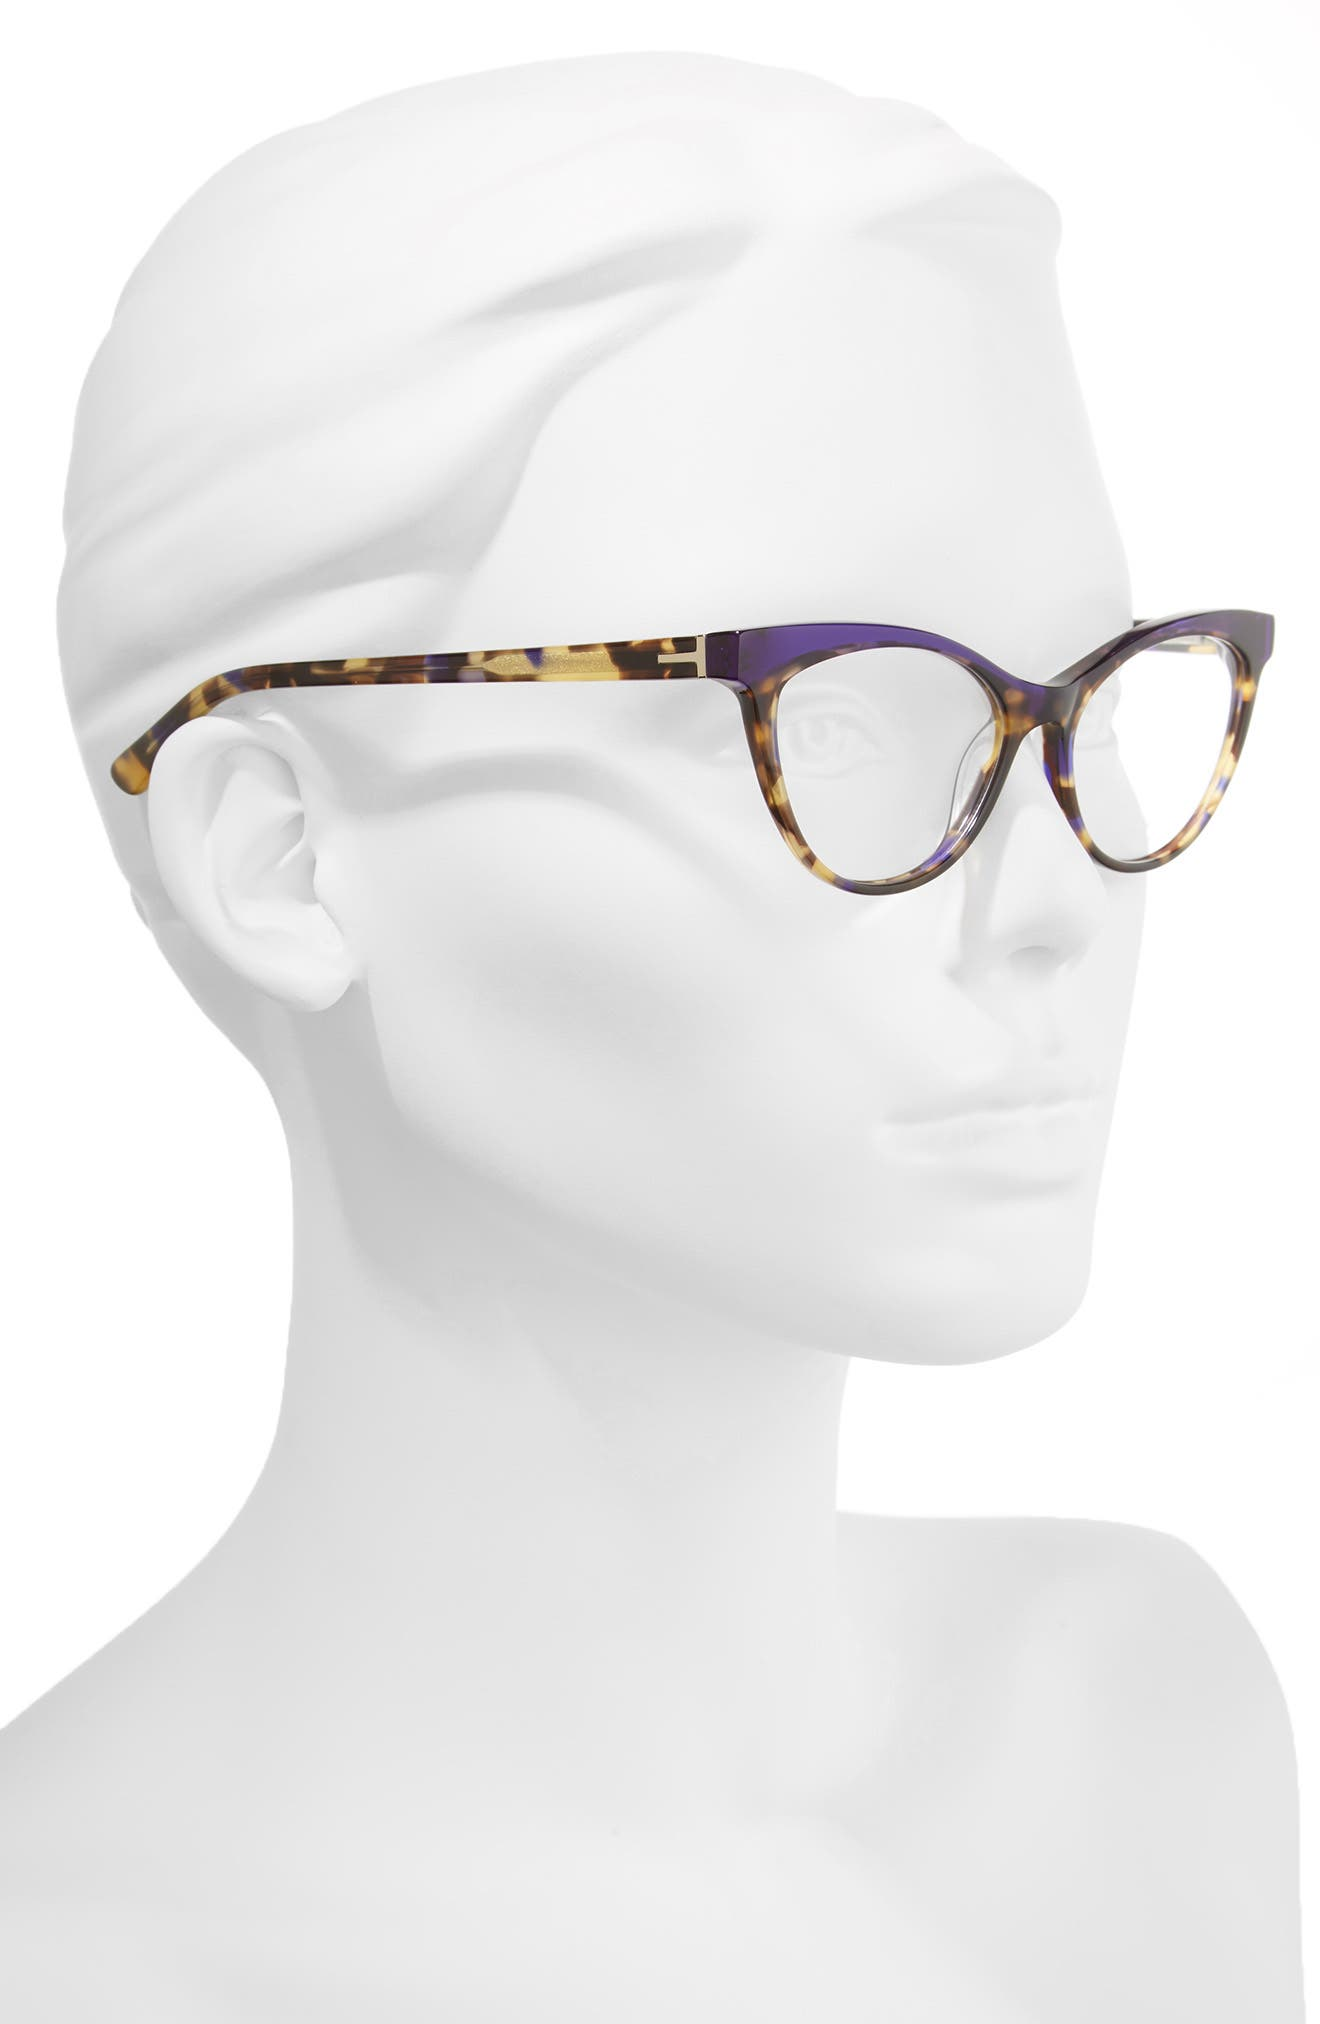 51mm Optical Cat Eye Glasses,                             Alternate thumbnail 2, color,